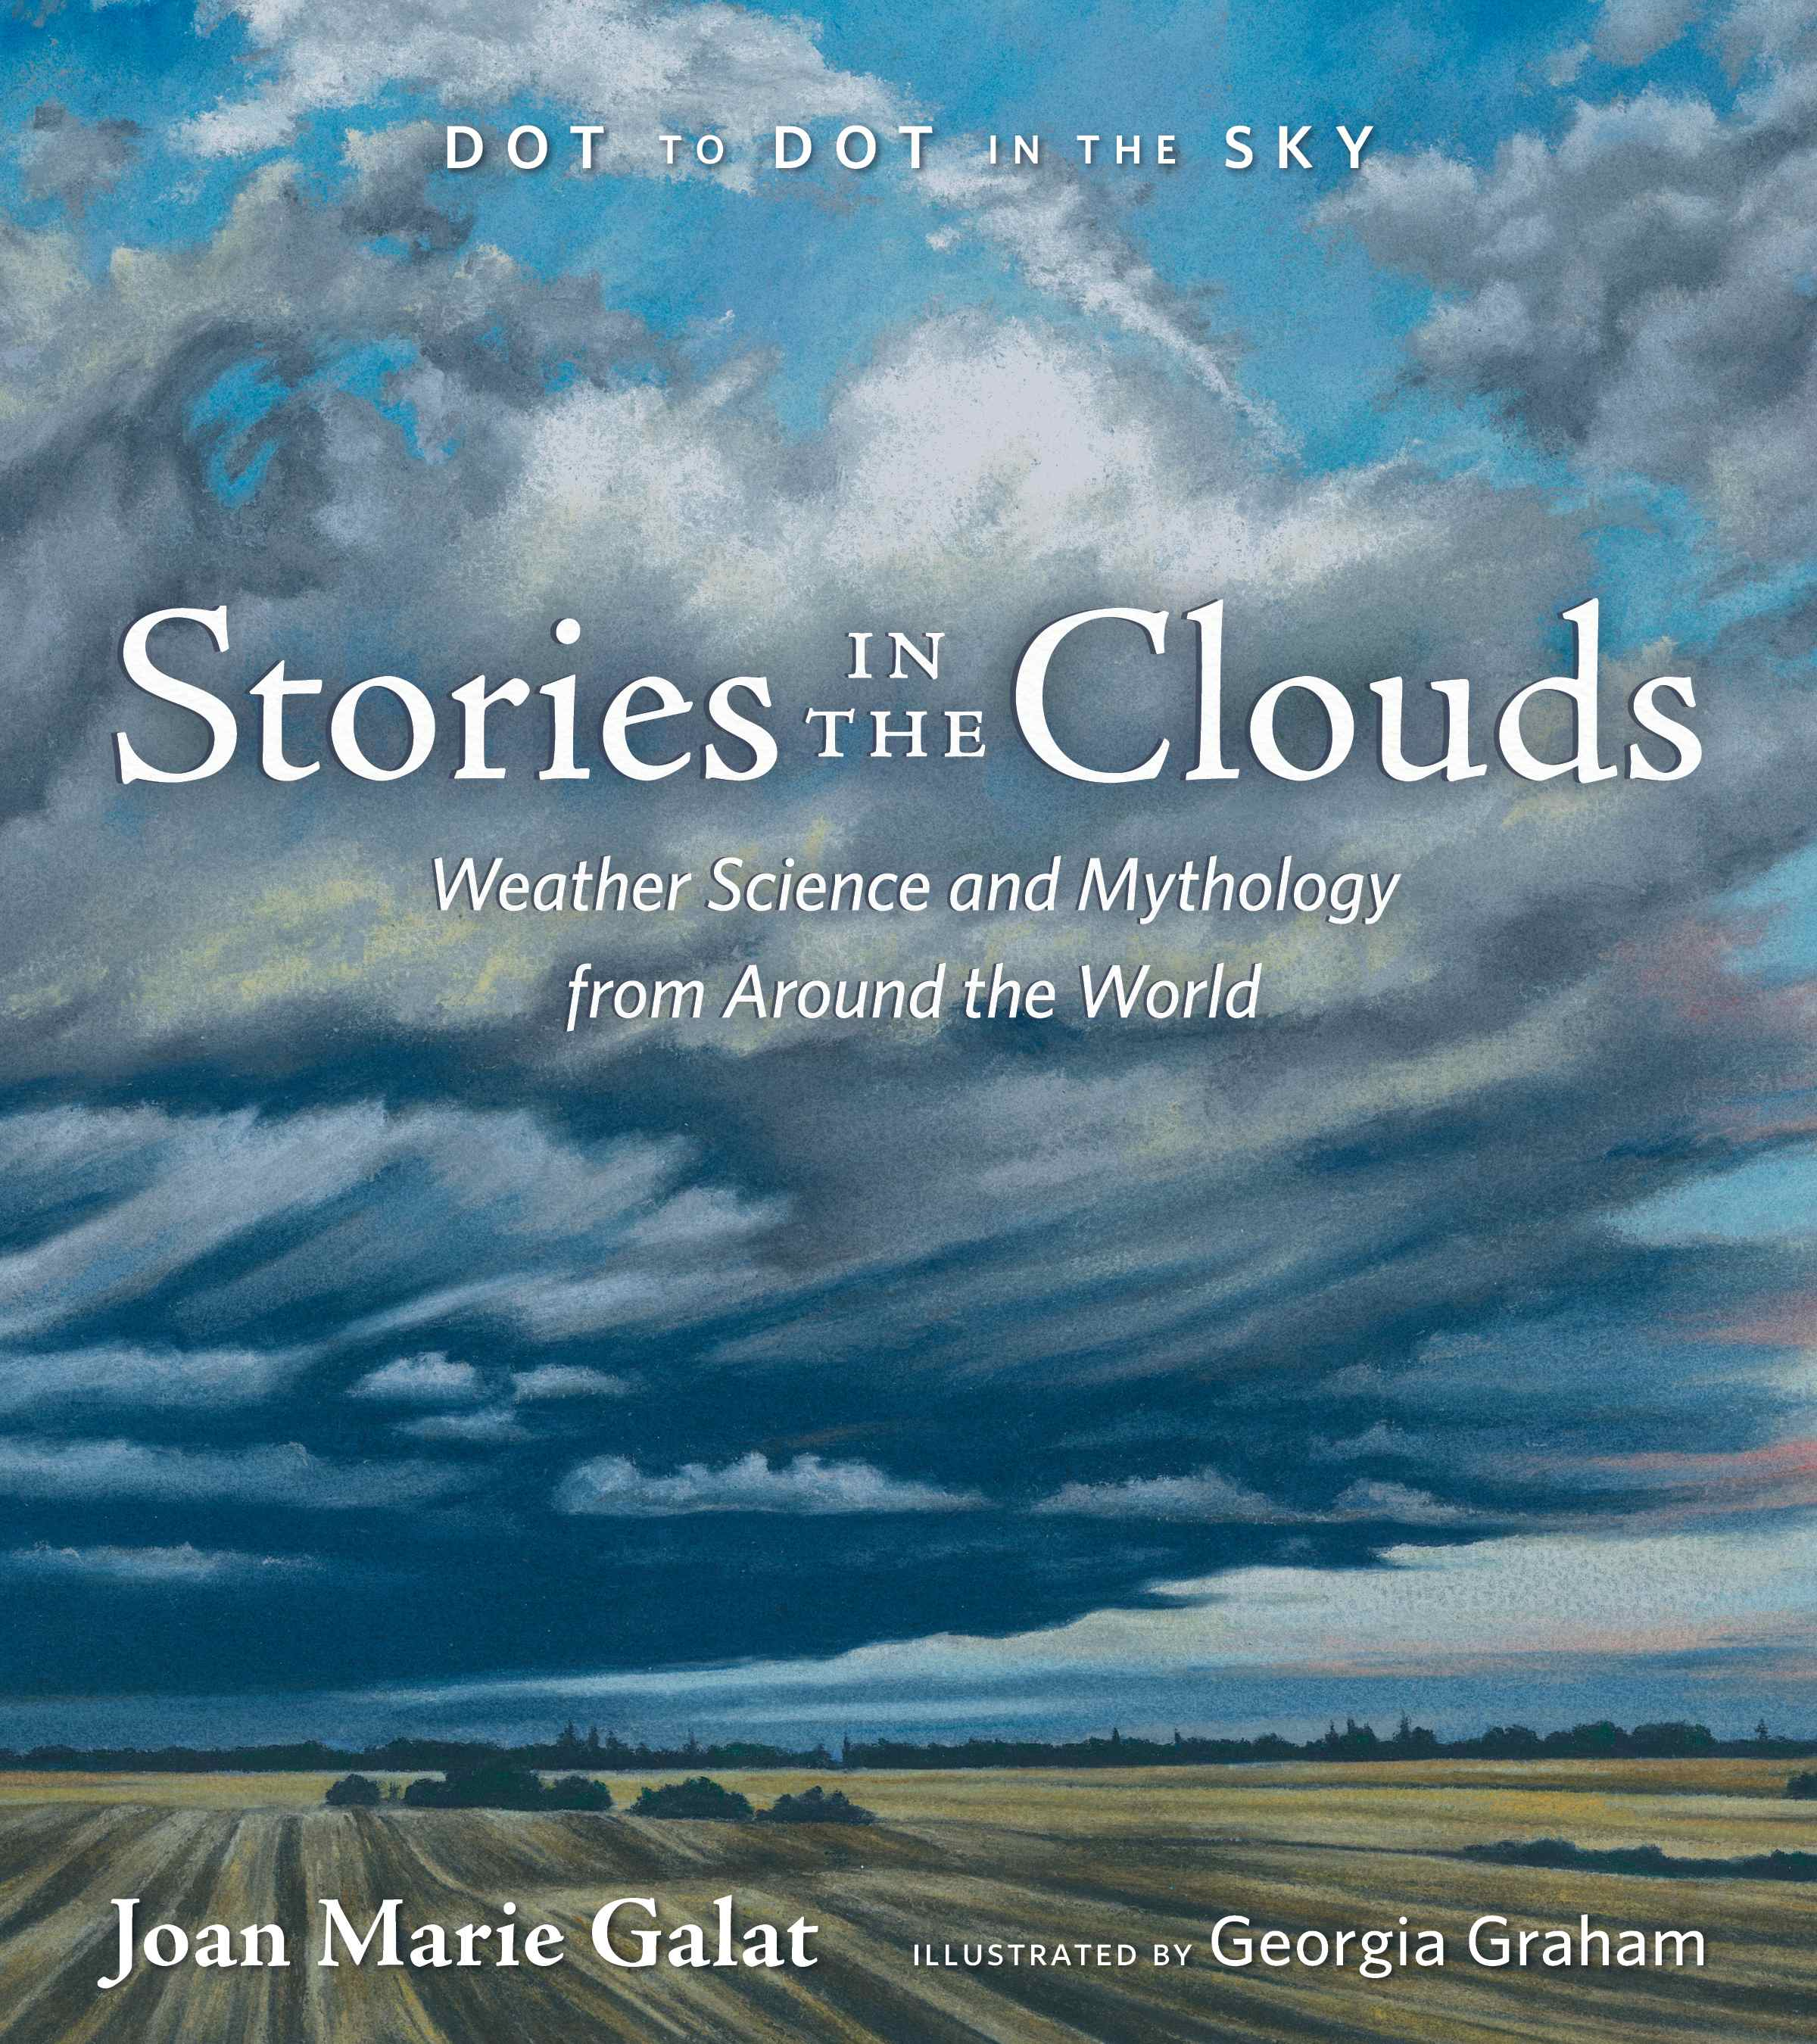 Dot to Dot - Stories in the Clouds - cover - low res